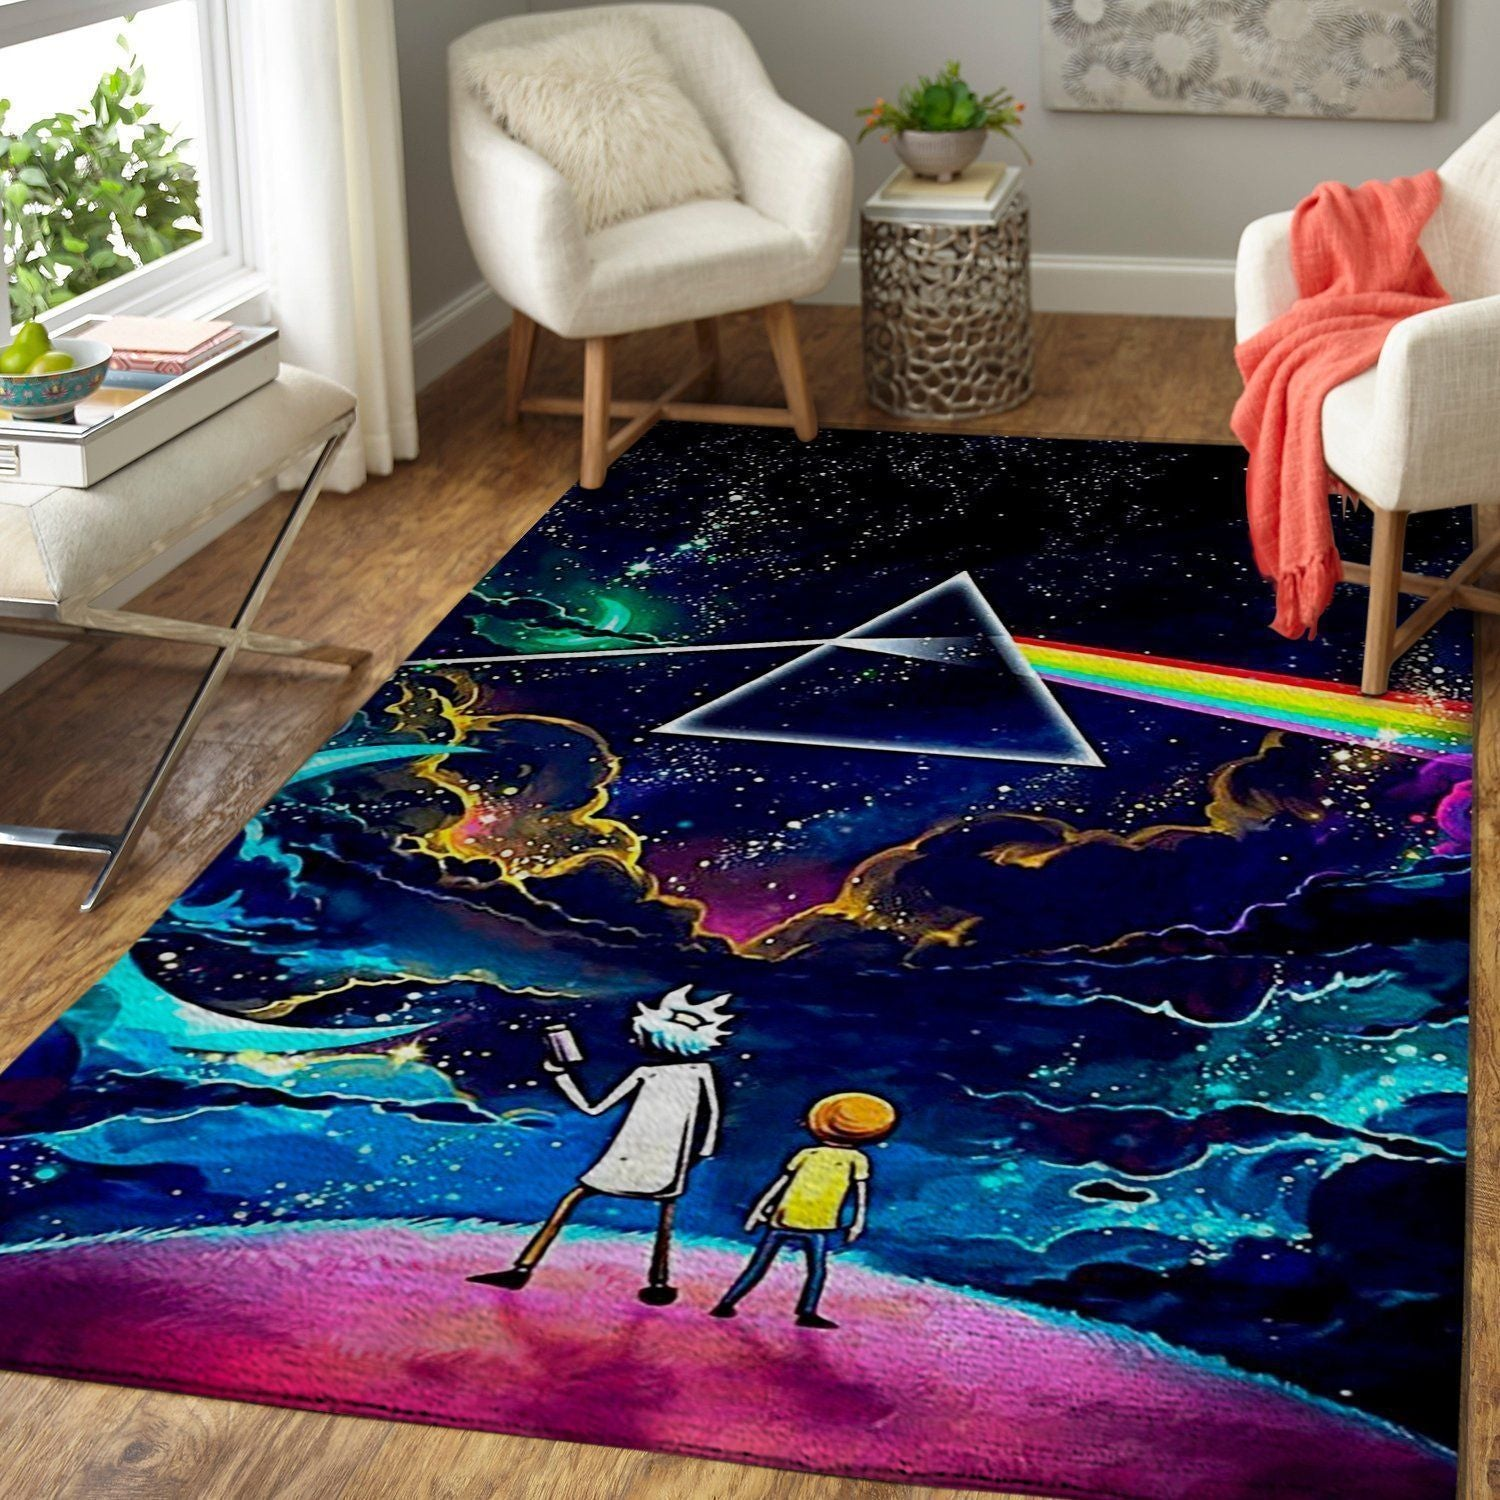 Rick & Morty Area Rugs, Movie Living Room Carpet, Custom Floor Decor